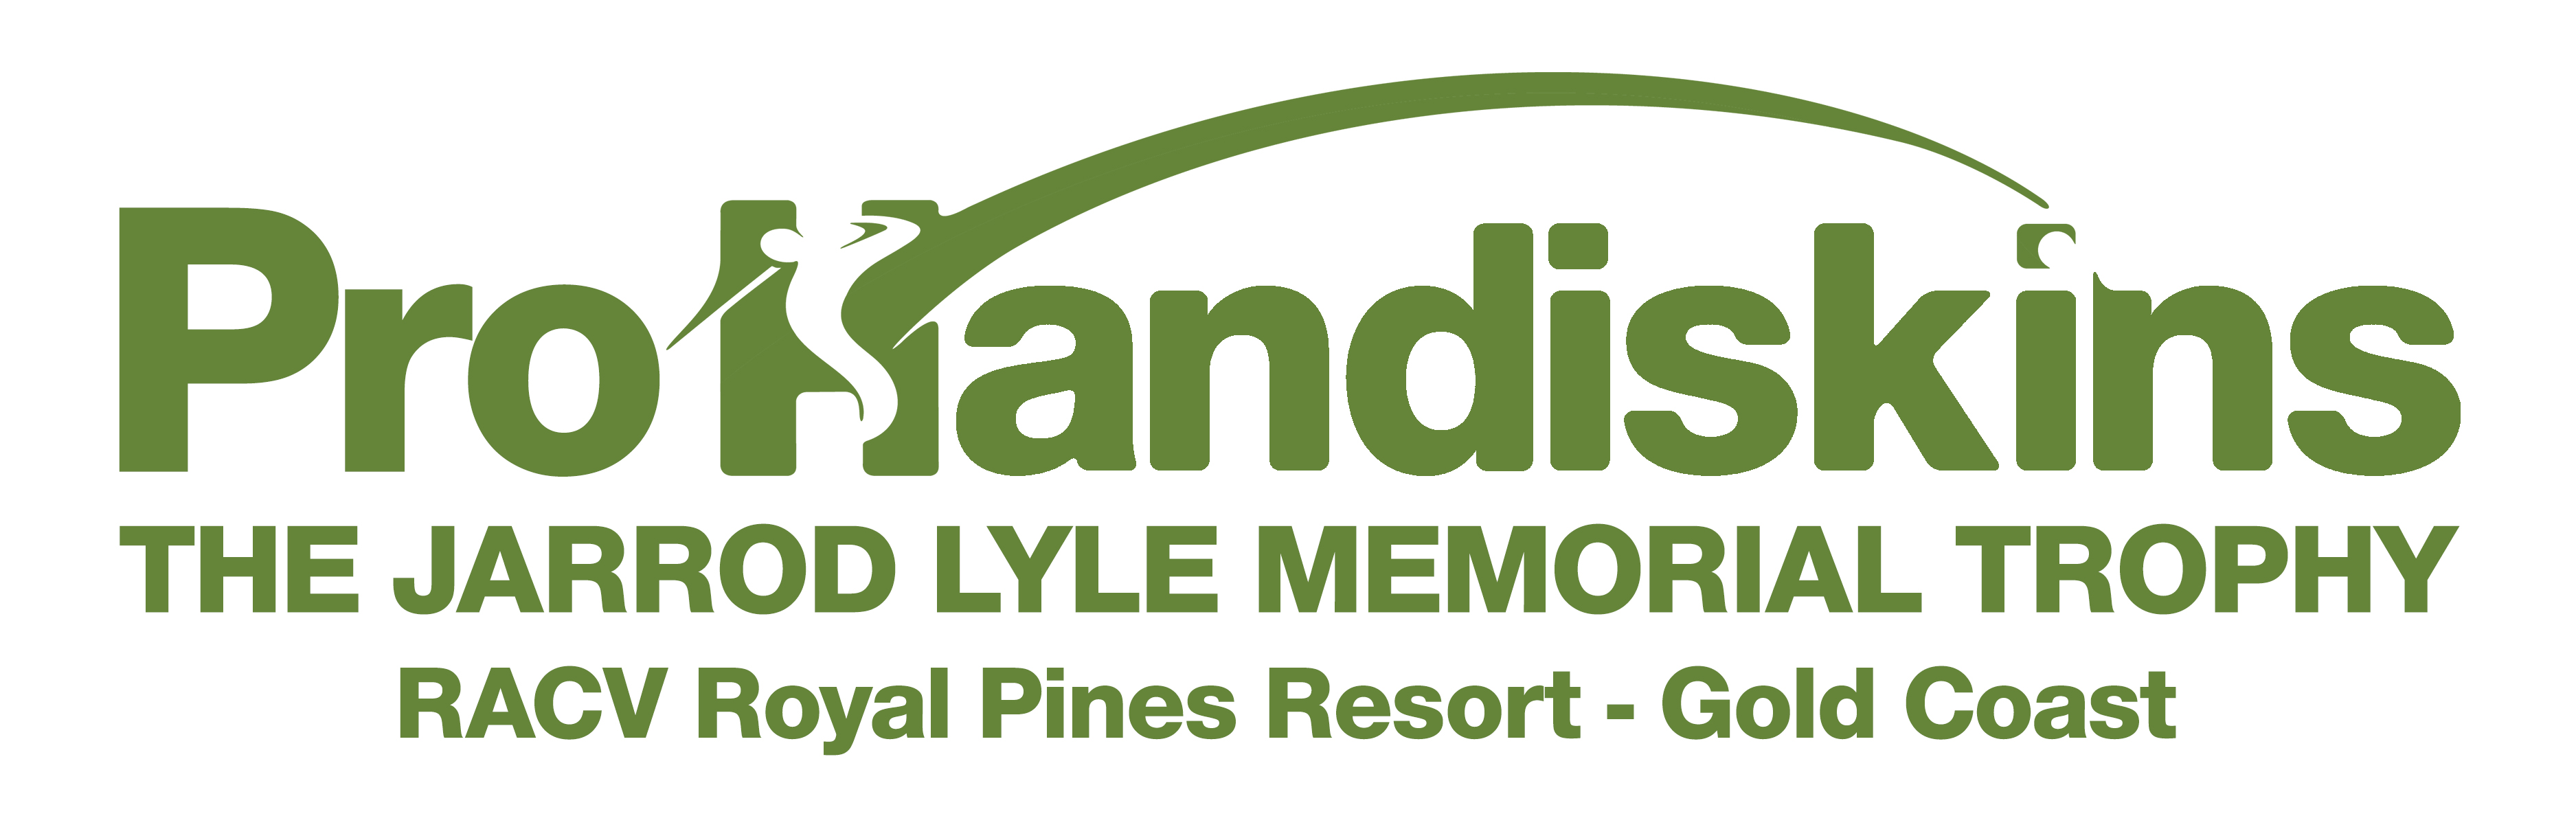 ProHandiksins - Jarrod Lyle Memorial Trophy